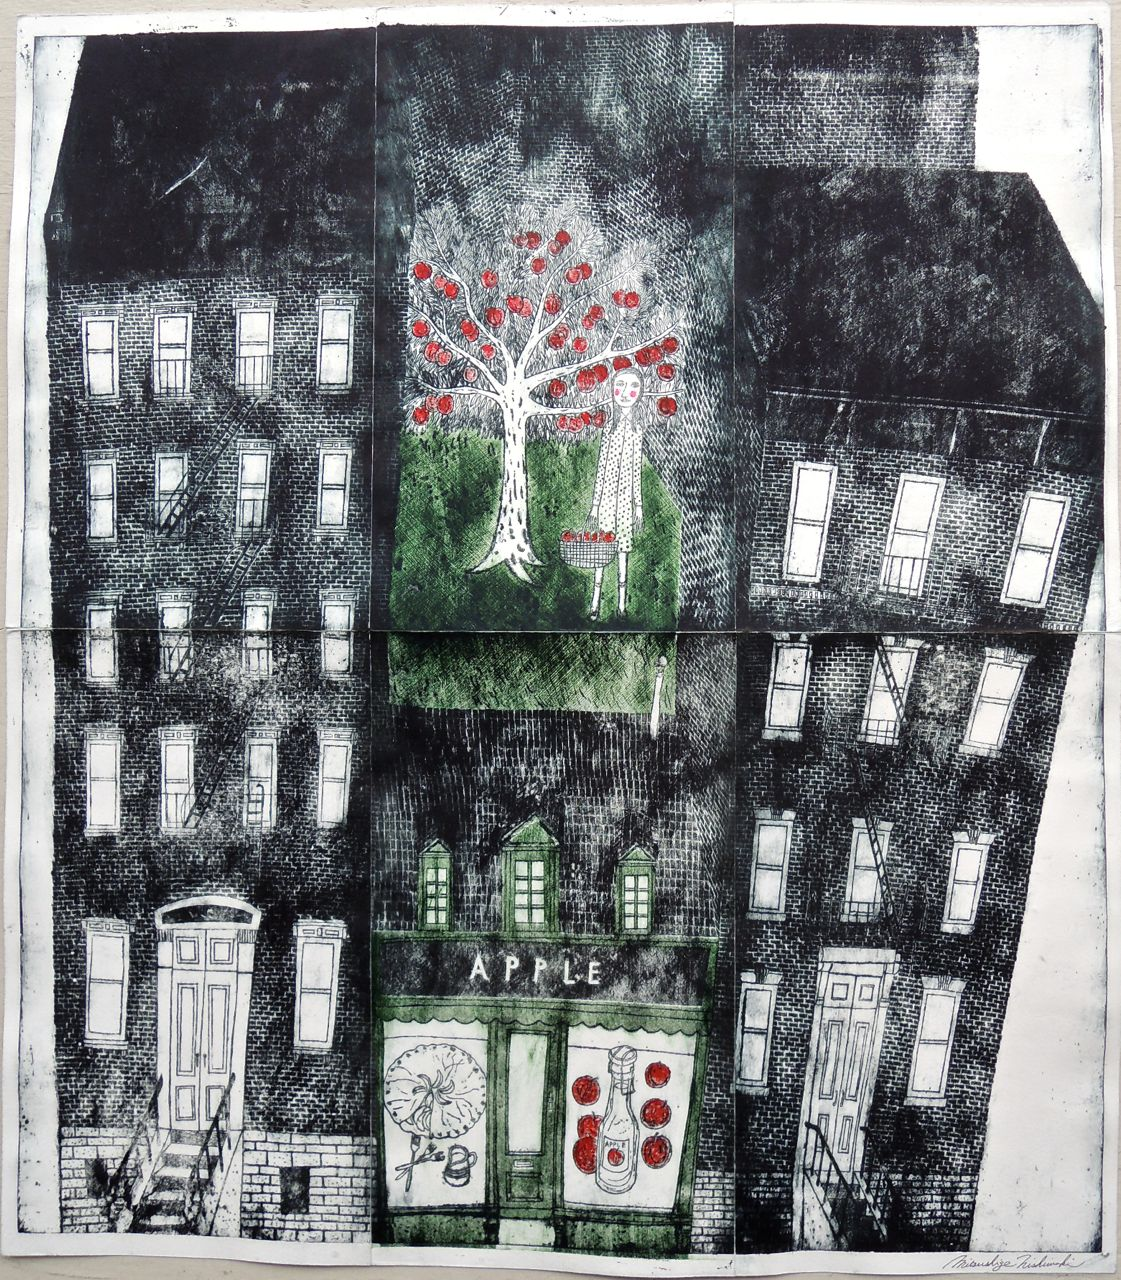 "Artist: Mitsushige Nishiwaki  Name: Apple  Size: 33 1/2"" x 29 3/4""  Price:  Inquire   Method: etching  Condition: signed print"